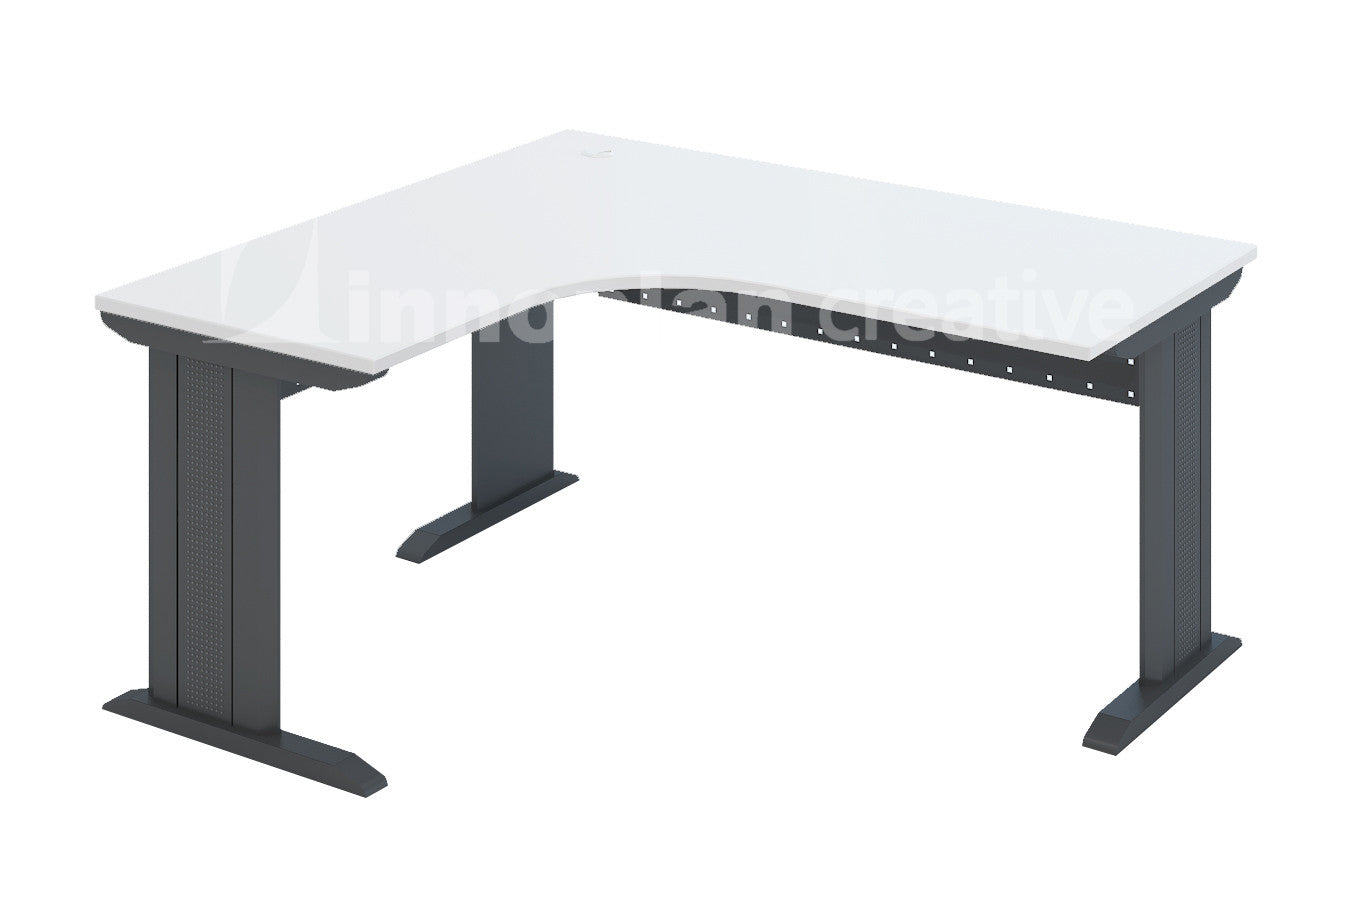 Beau L Shaped Table (IDC Metal Leg)